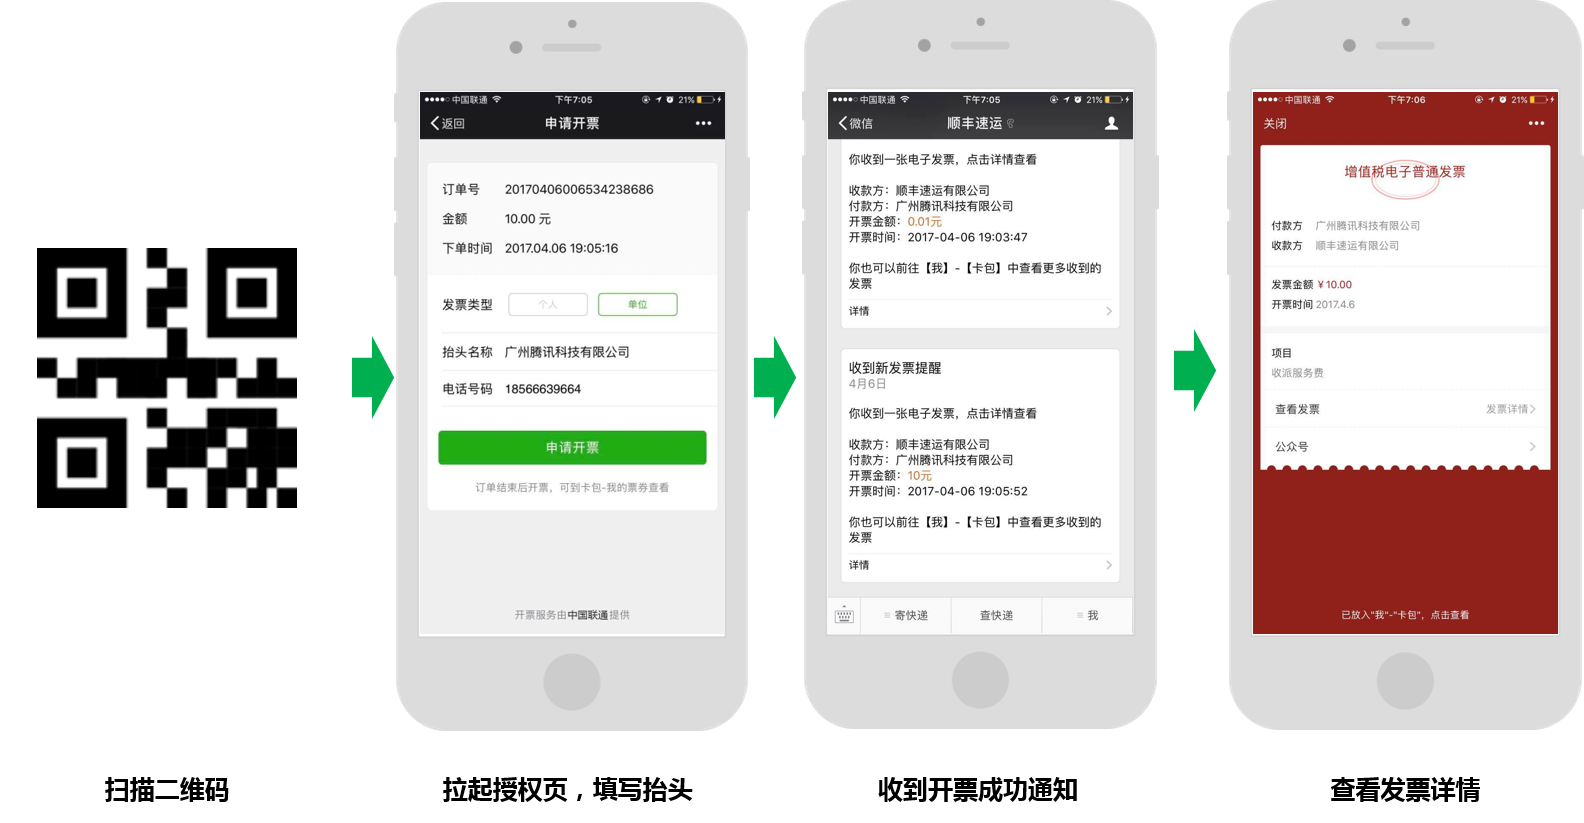 Invoicing by scanning QR code